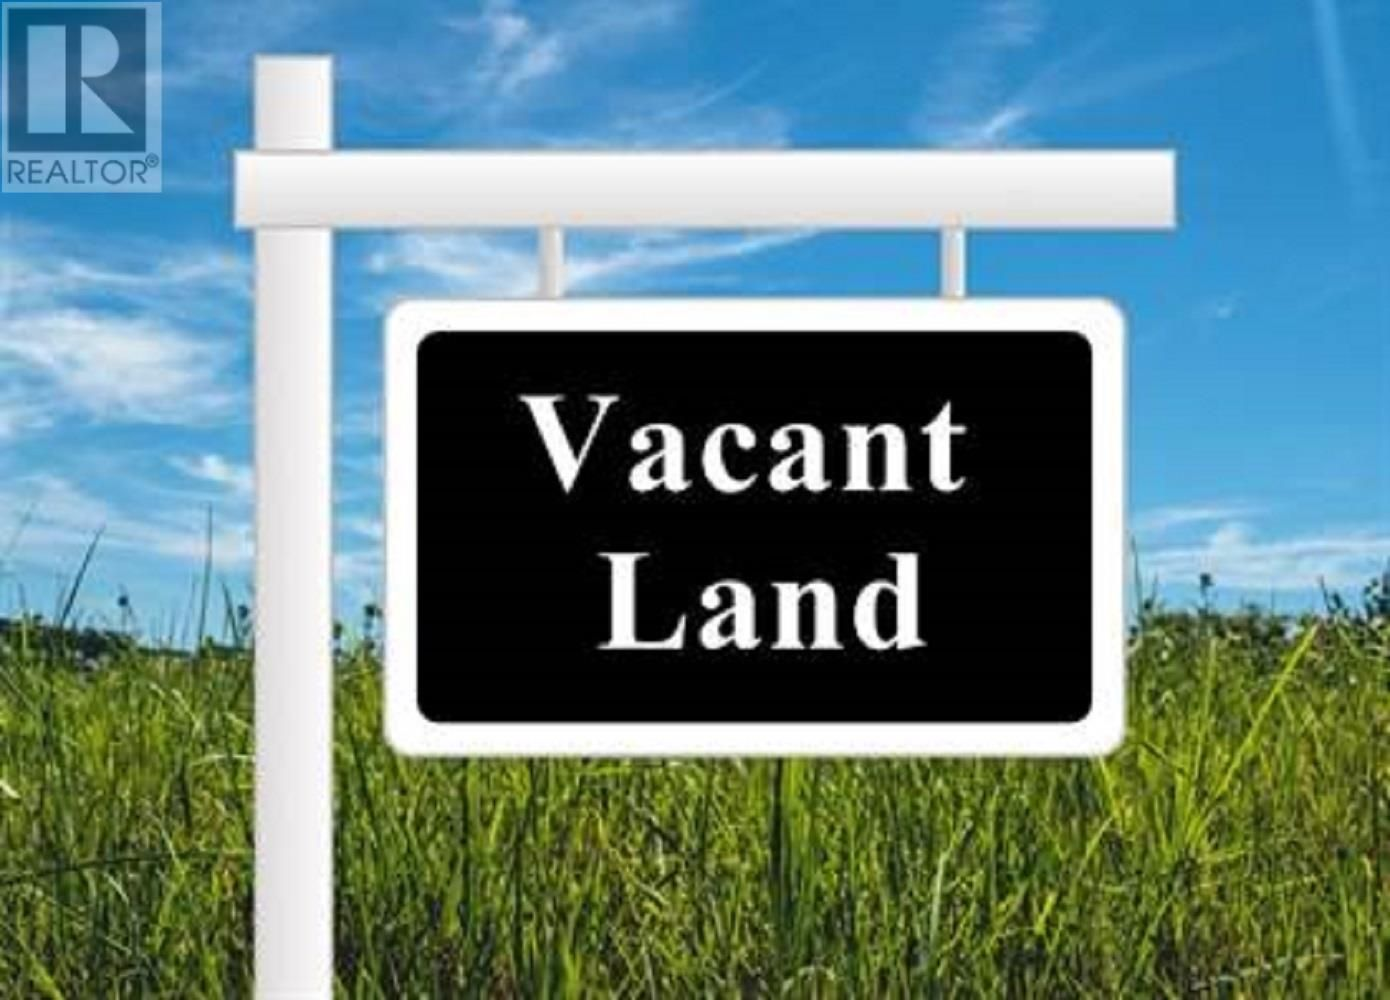 Main Photo: Lot 6 Marie Avenue in Conquerall Bank: Vacant Land for sale : MLS®# 202106942